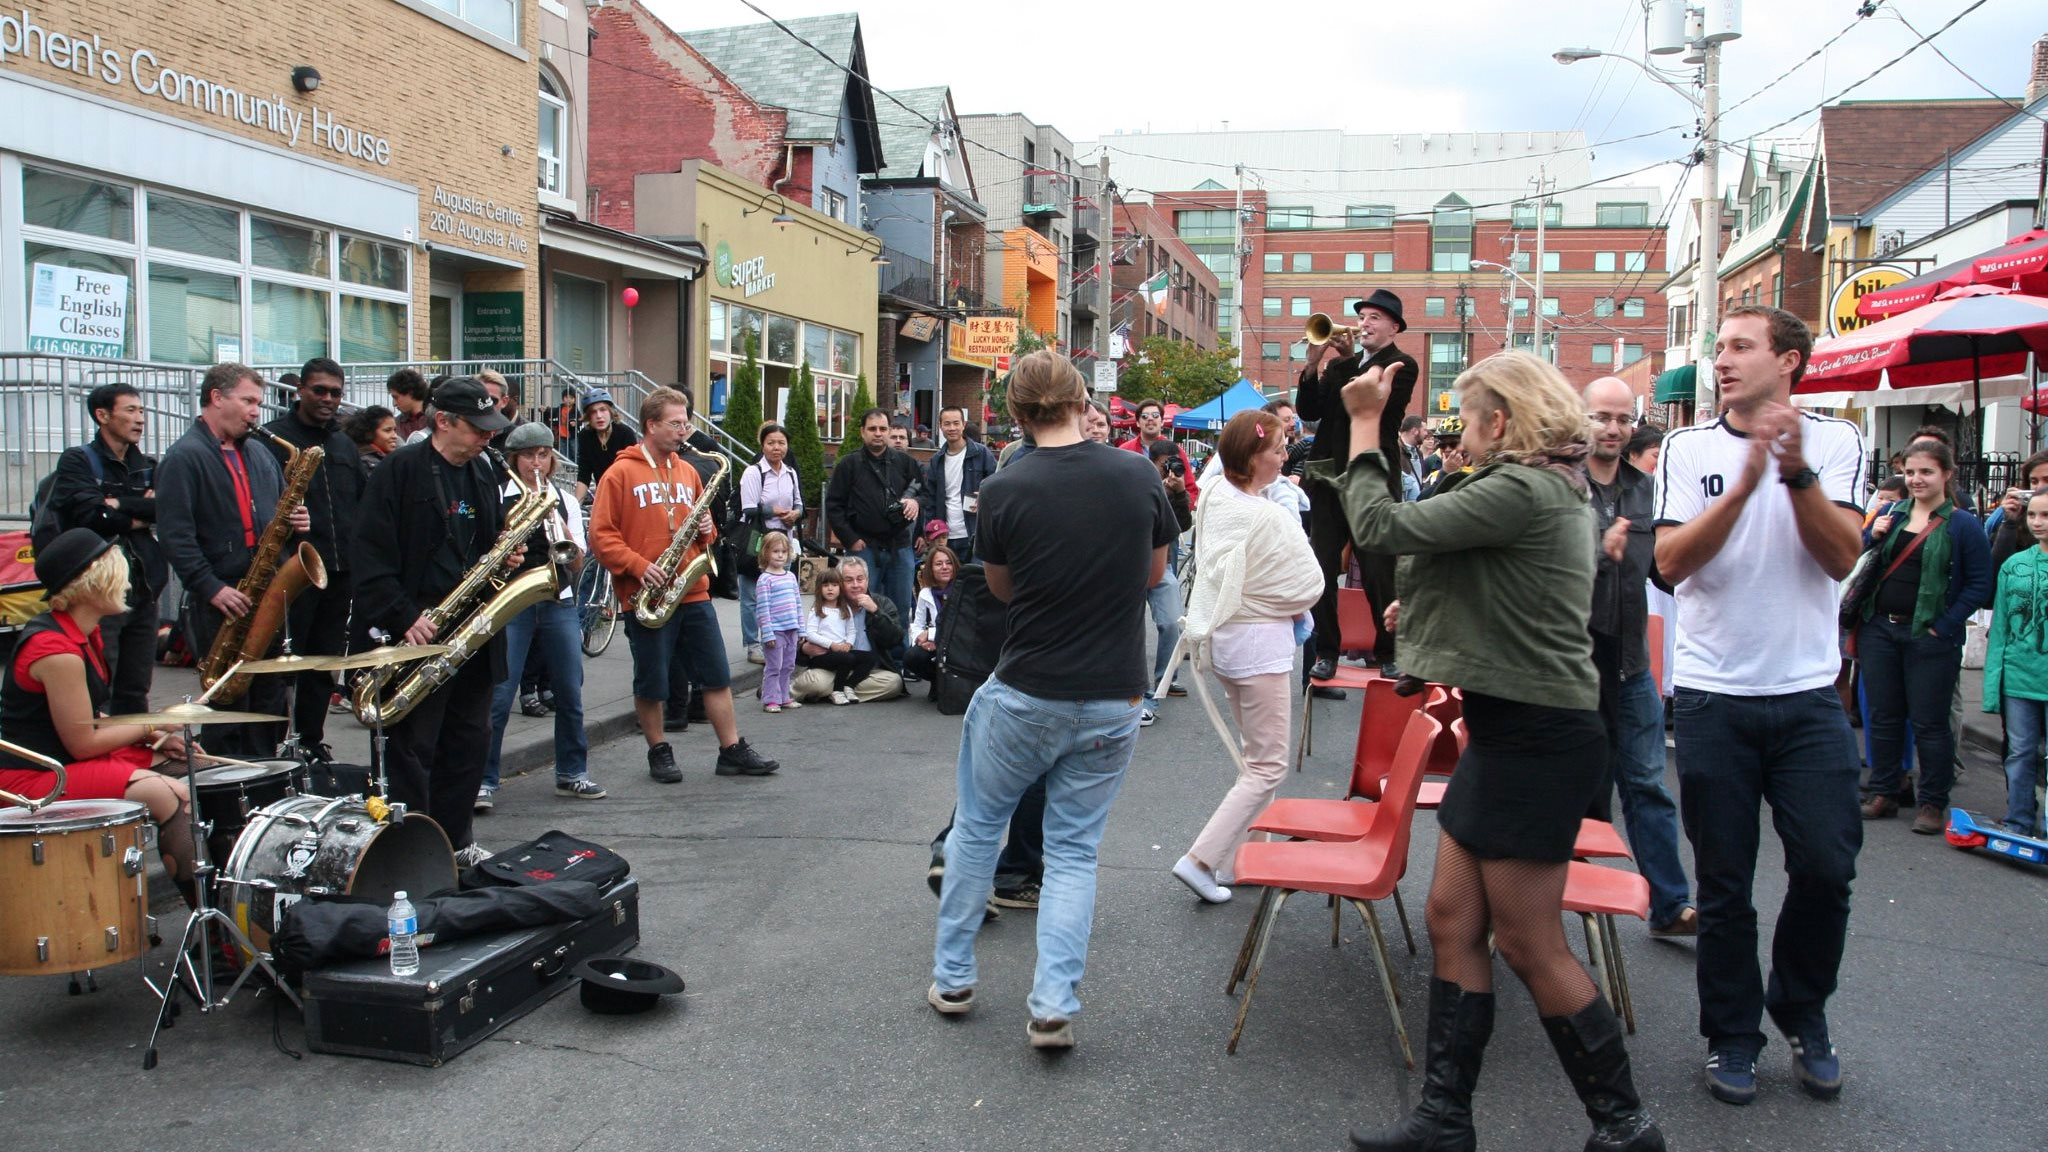 Jazz musicians play during Pedestrian Sundays in Kensington Market. FACEBOOK/Pedestrian-Sundays-in-Kensington-Market